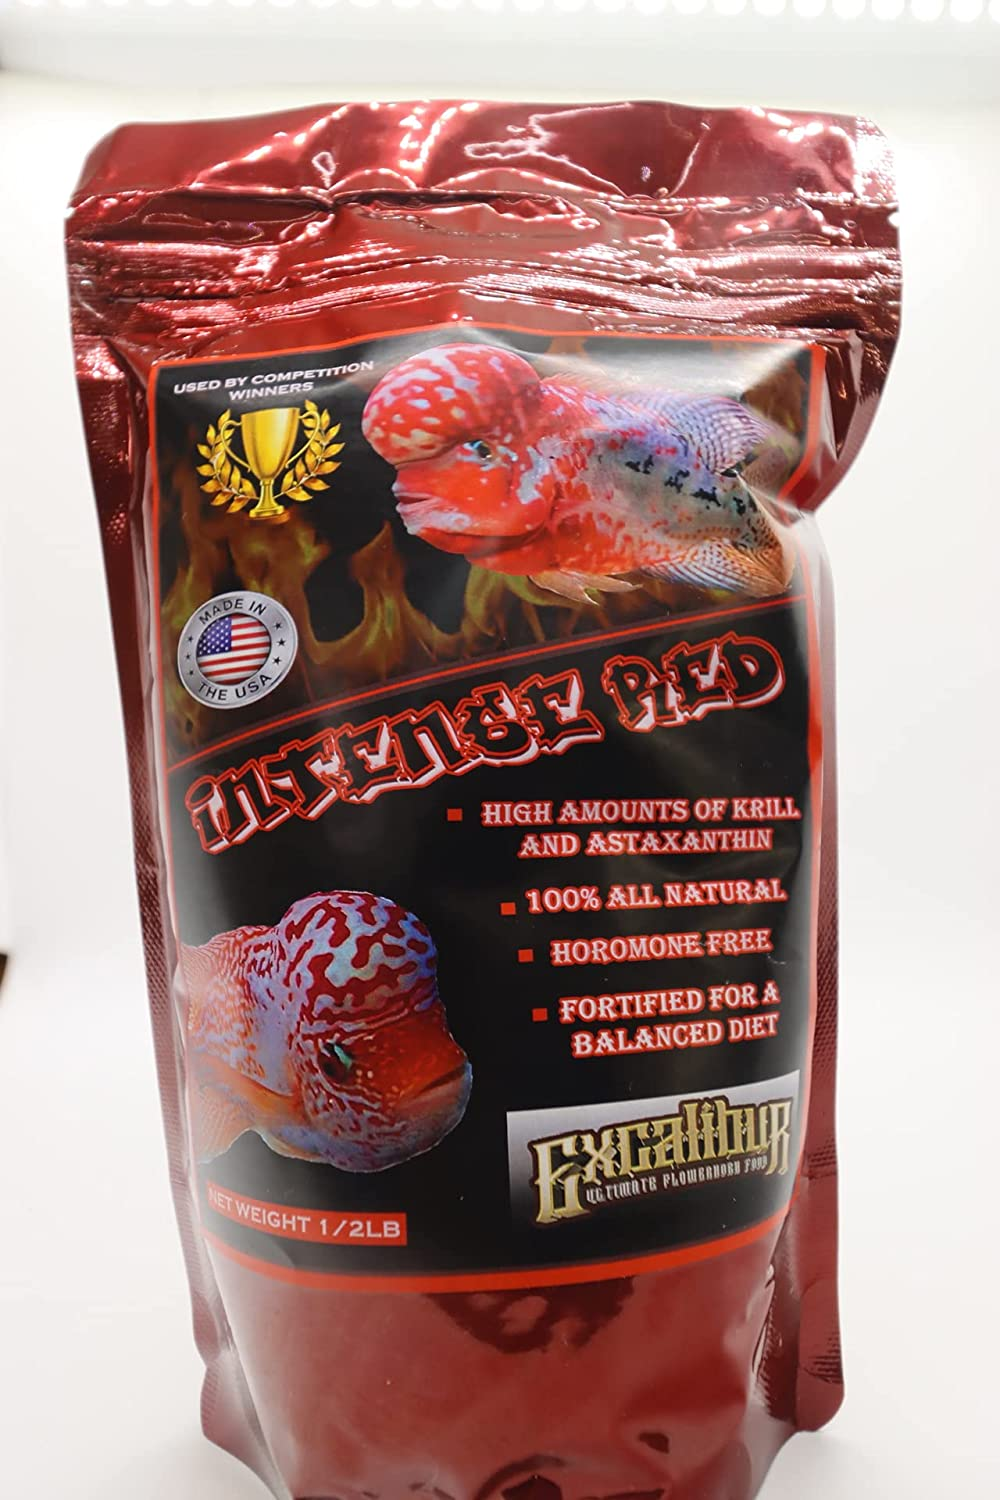 Excalibur Flowerhorn Food Intense Red 3mm Fish Food Cichlid Food 3MM PELLETS All Natural Made in The USA More Intense red Color Packed with Krill, Shrimp, and astaxanthin